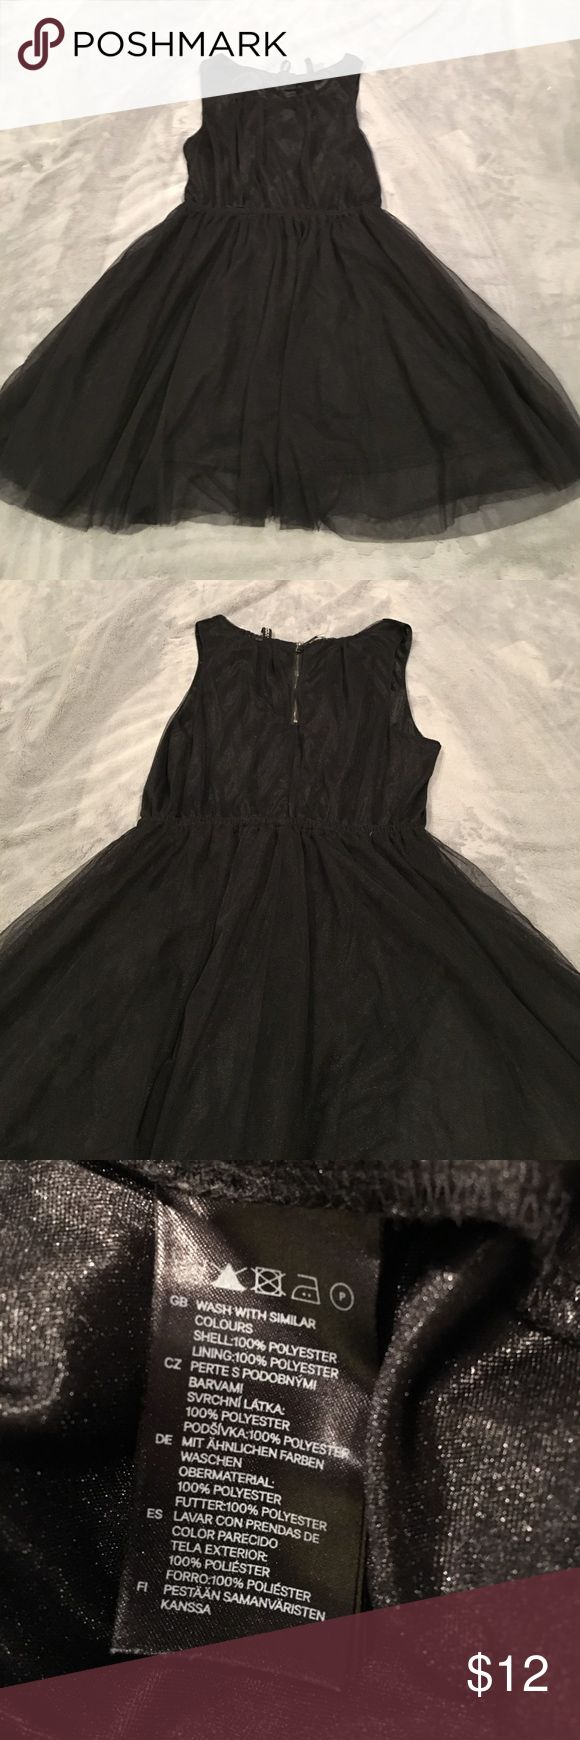 Tulle material dress Dress was purchased from an H&M store. It has a stretchable waist line. The material does not fray on the bottom. It's a nice simple black party dress to throw on. Divided Dresses Mini